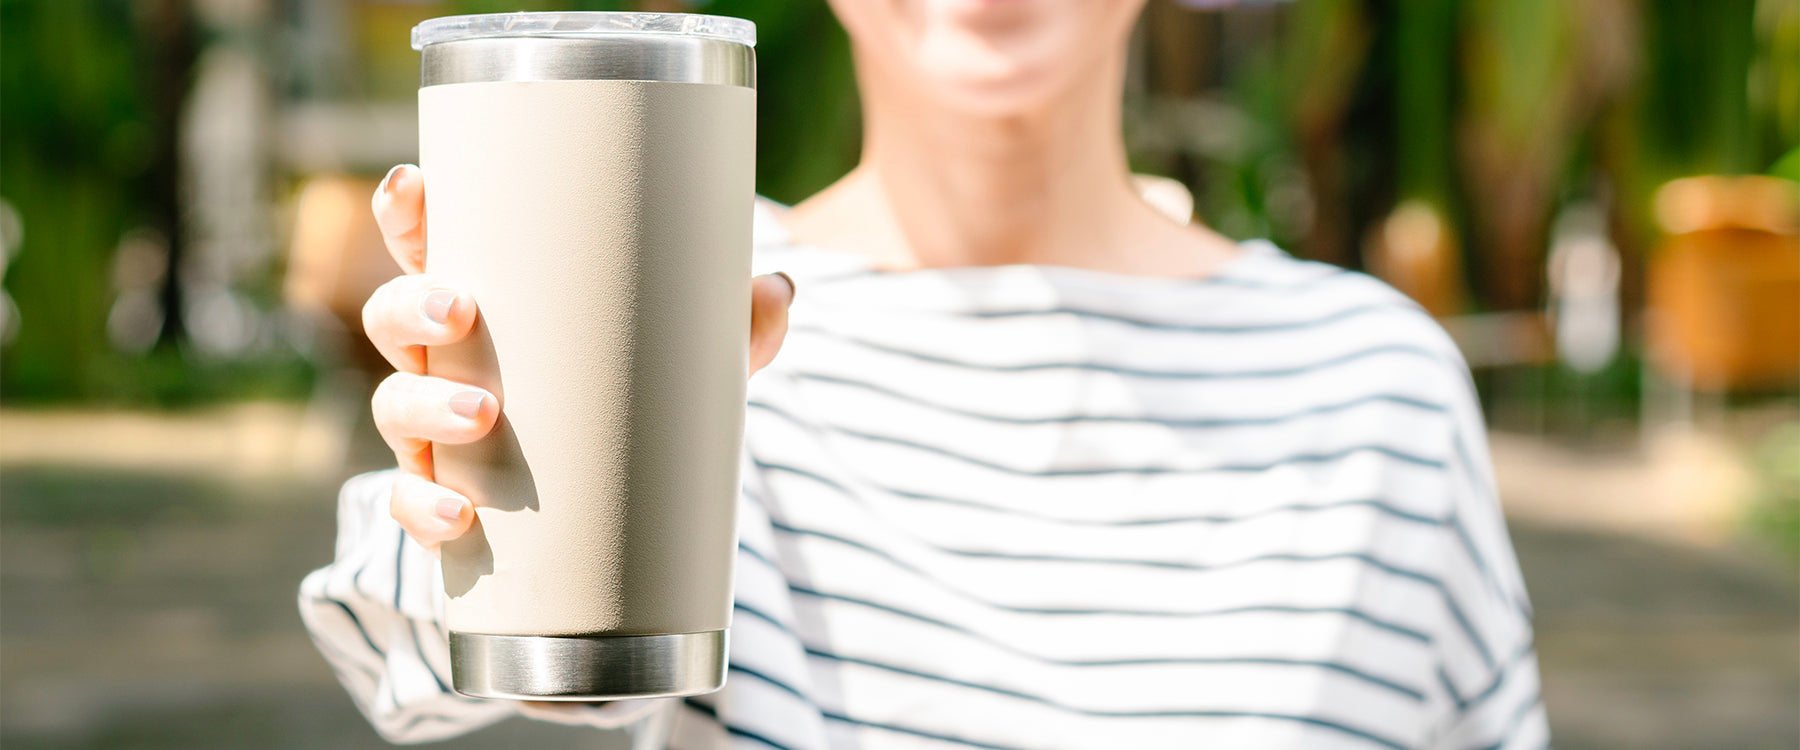 Top selling stainless steel tumblers. What's the difference between brands and will the madness ever stop!